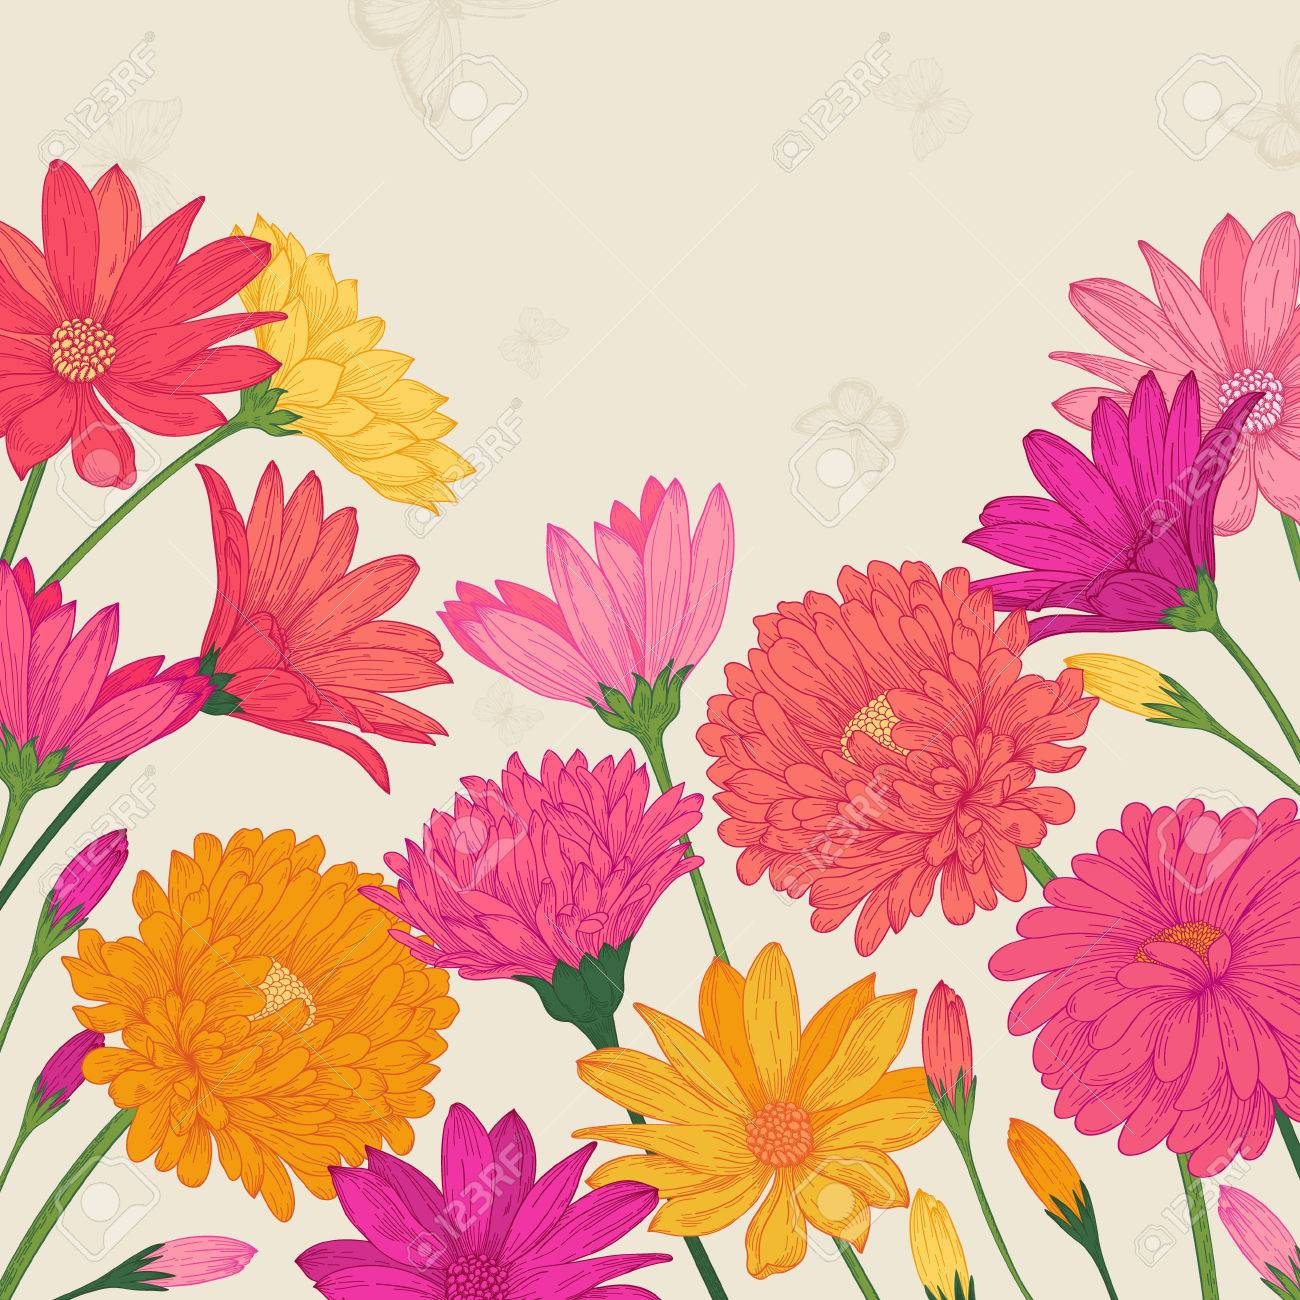 Summer Card With Colorful Flowers Asters And Daisies In Vintage ...